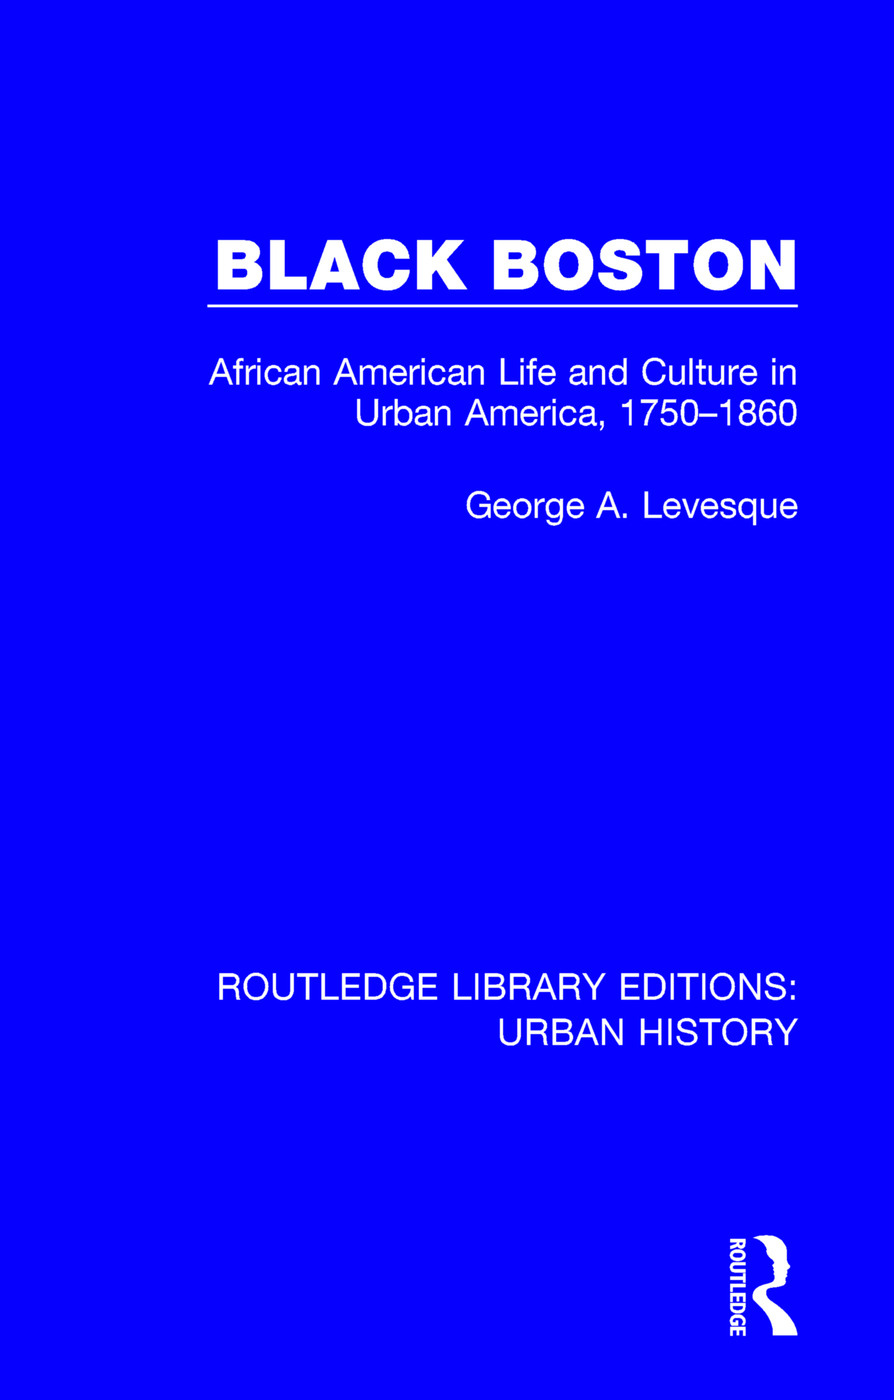 Black Boston: African American Life and Culture in Urban America, 1750-1860 book cover